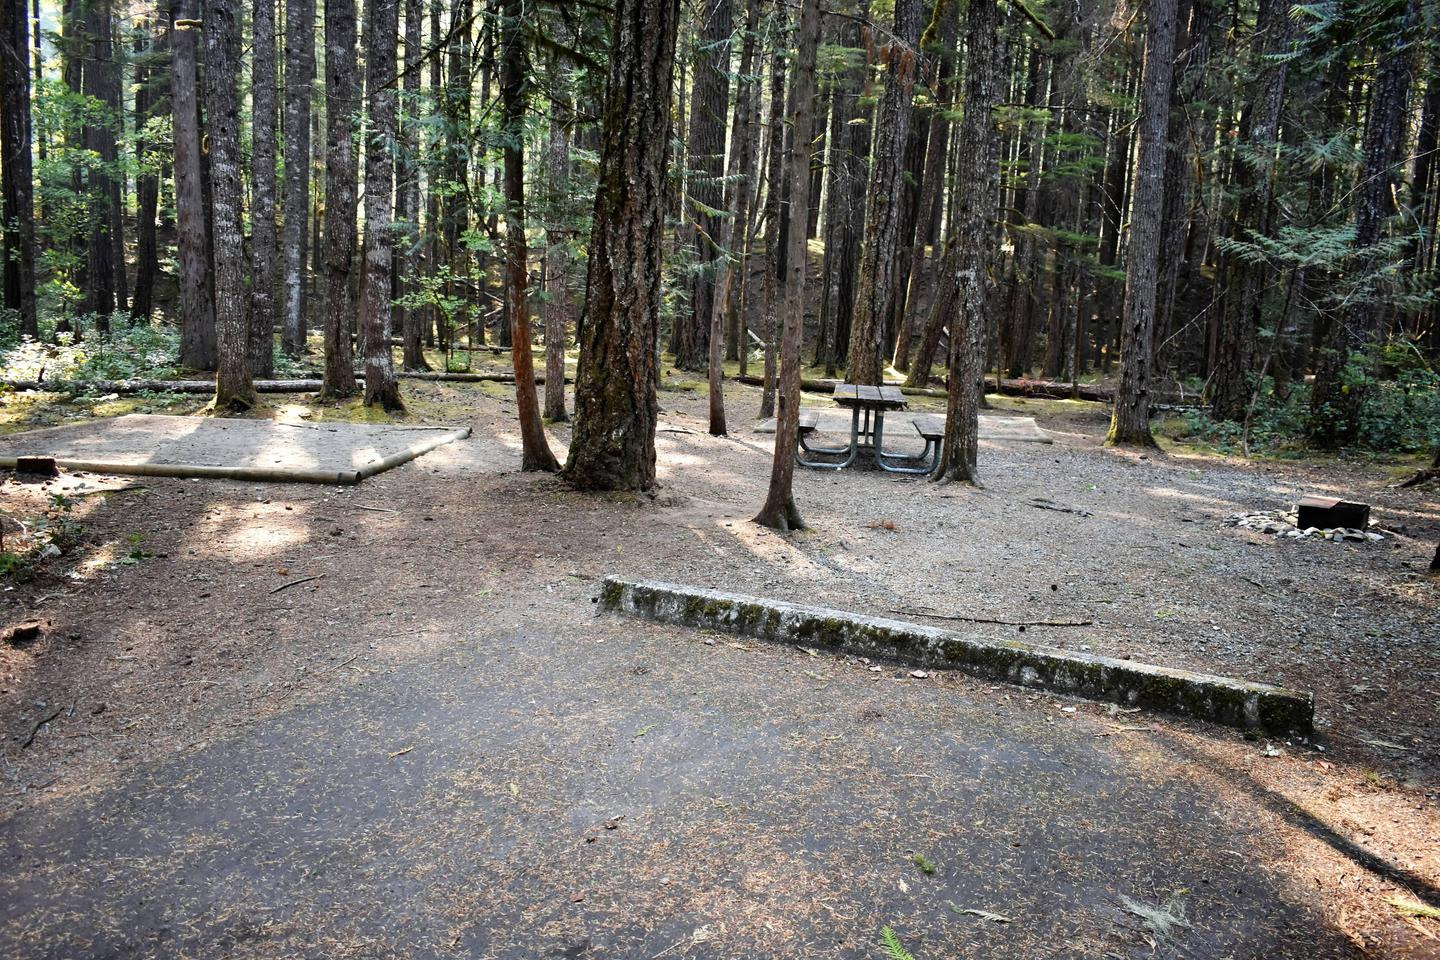 Tent pads, fire rings, and picnic tableView of campsite